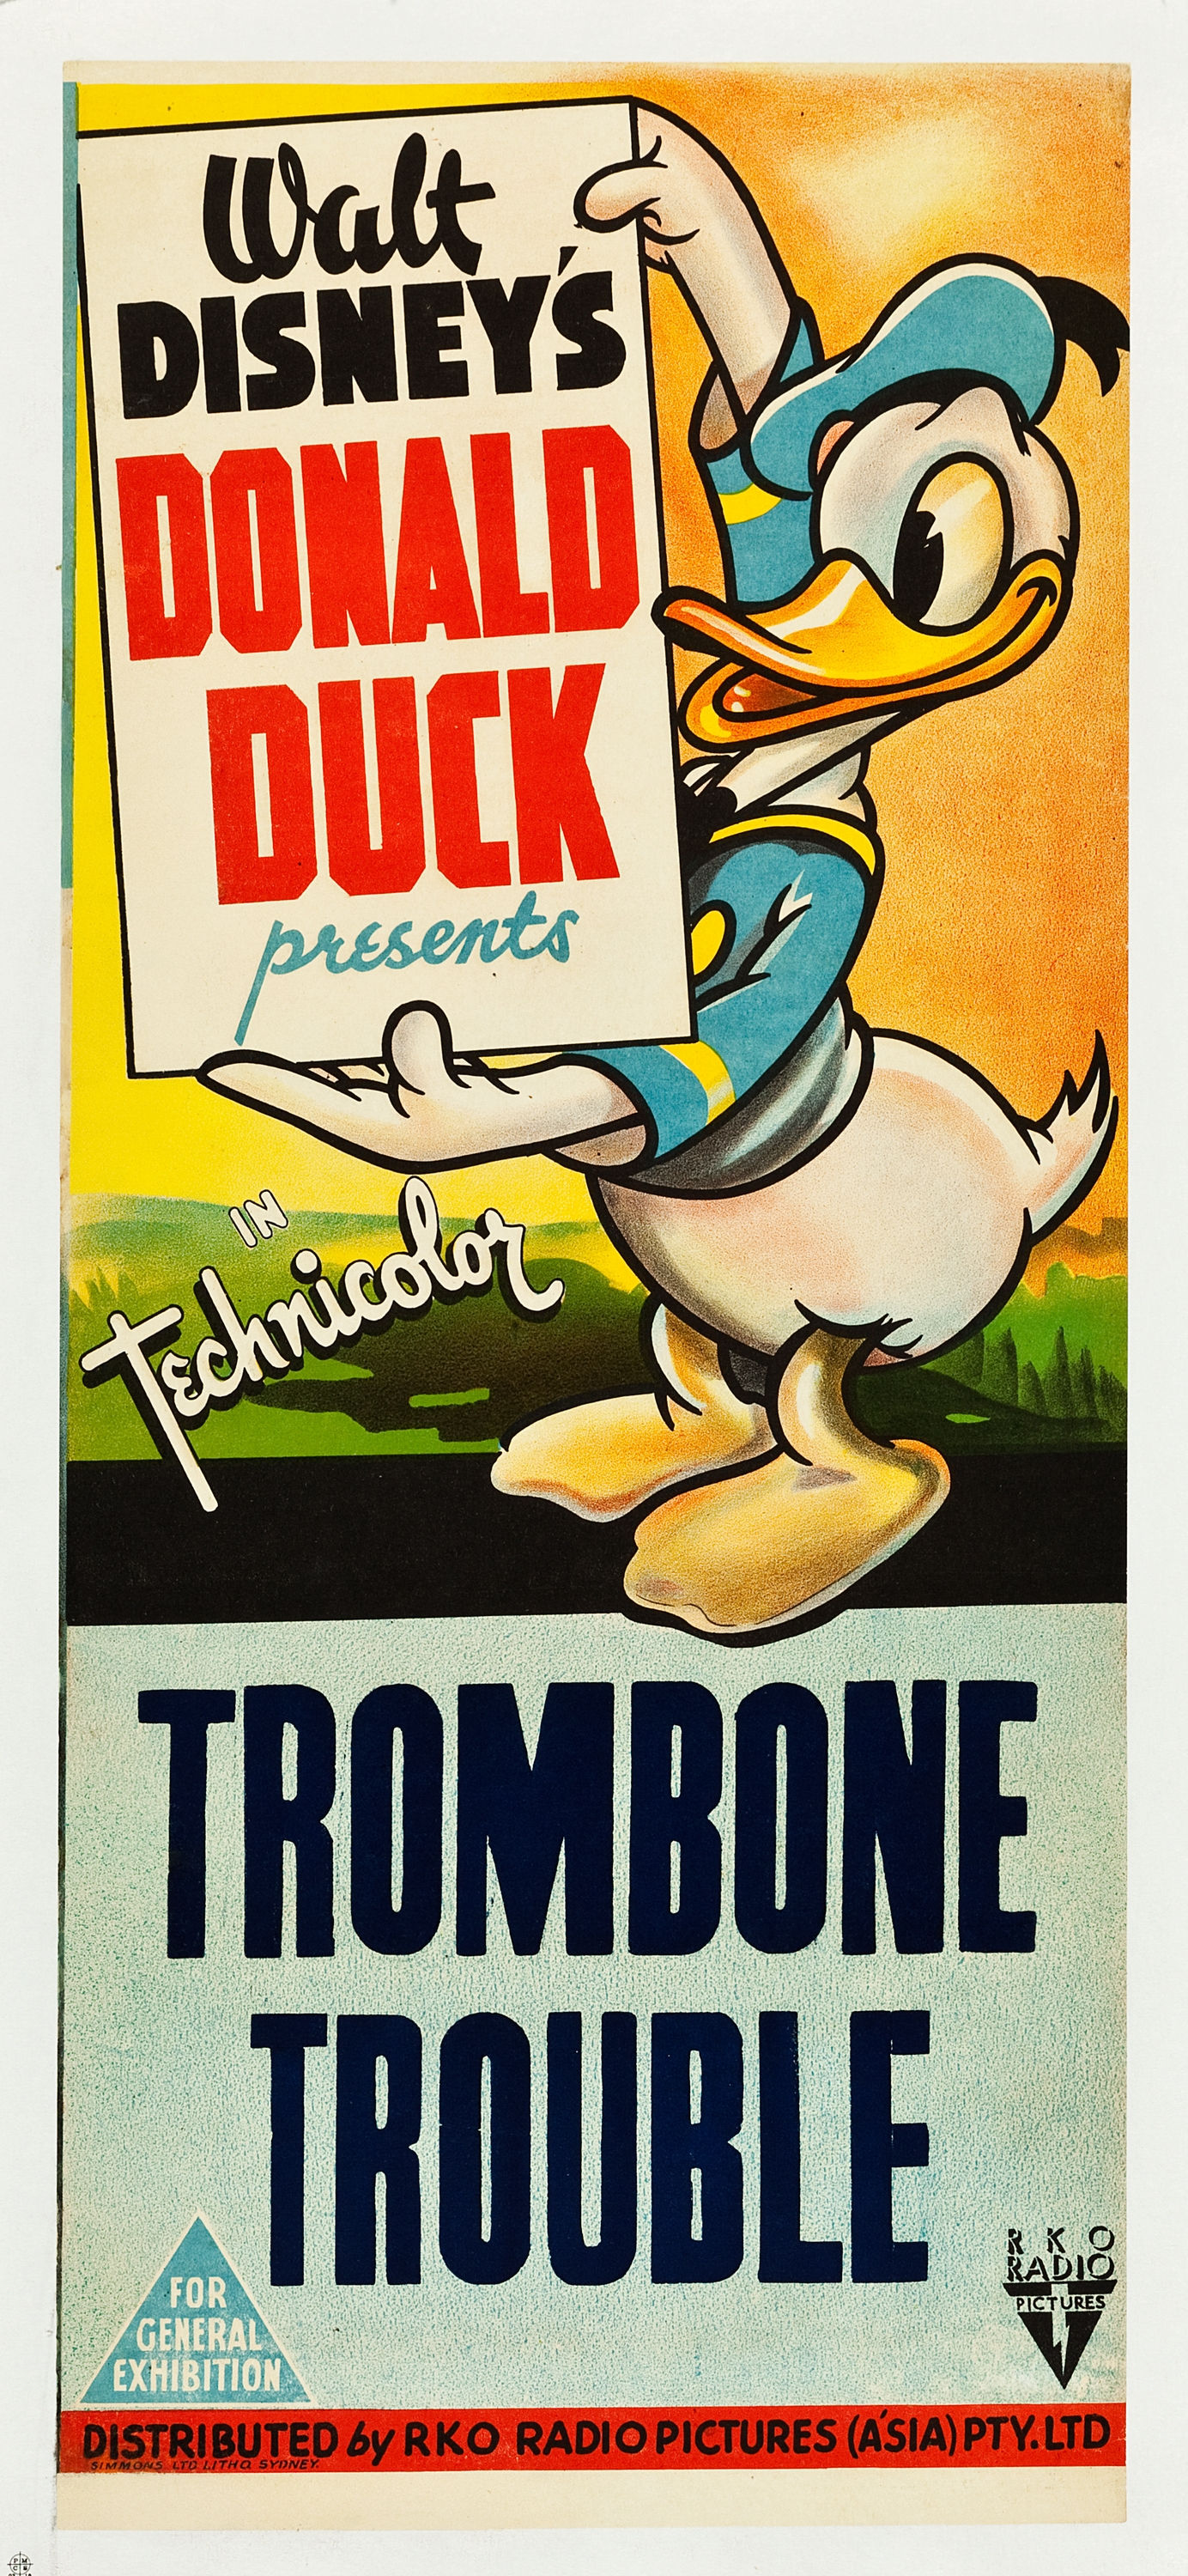 "Trombone Trouble (RKO, 1944). Australian Daybill (13"" X 30"").  ""Walt Disney's popular character Donald Duck takes center stage in this hilarious animated short. The crude and not too bright Pegleg Pete insists on practicing his trombone nightly, much to the disdain of neighbor Donald and gods Jupiter and Vulcan. In an attempt to put an end to Pegleg's horn blowing, the gods give the foul tempered fowl a bit of their power, of which Donald takes full advantage. A first for Heritage, this restored poster had a tear in the lower edge, chips in the left edge, and a small hole near the title. Fine/Very Fine on Linen. Estimate: $600 - $1,200."" —H.A."